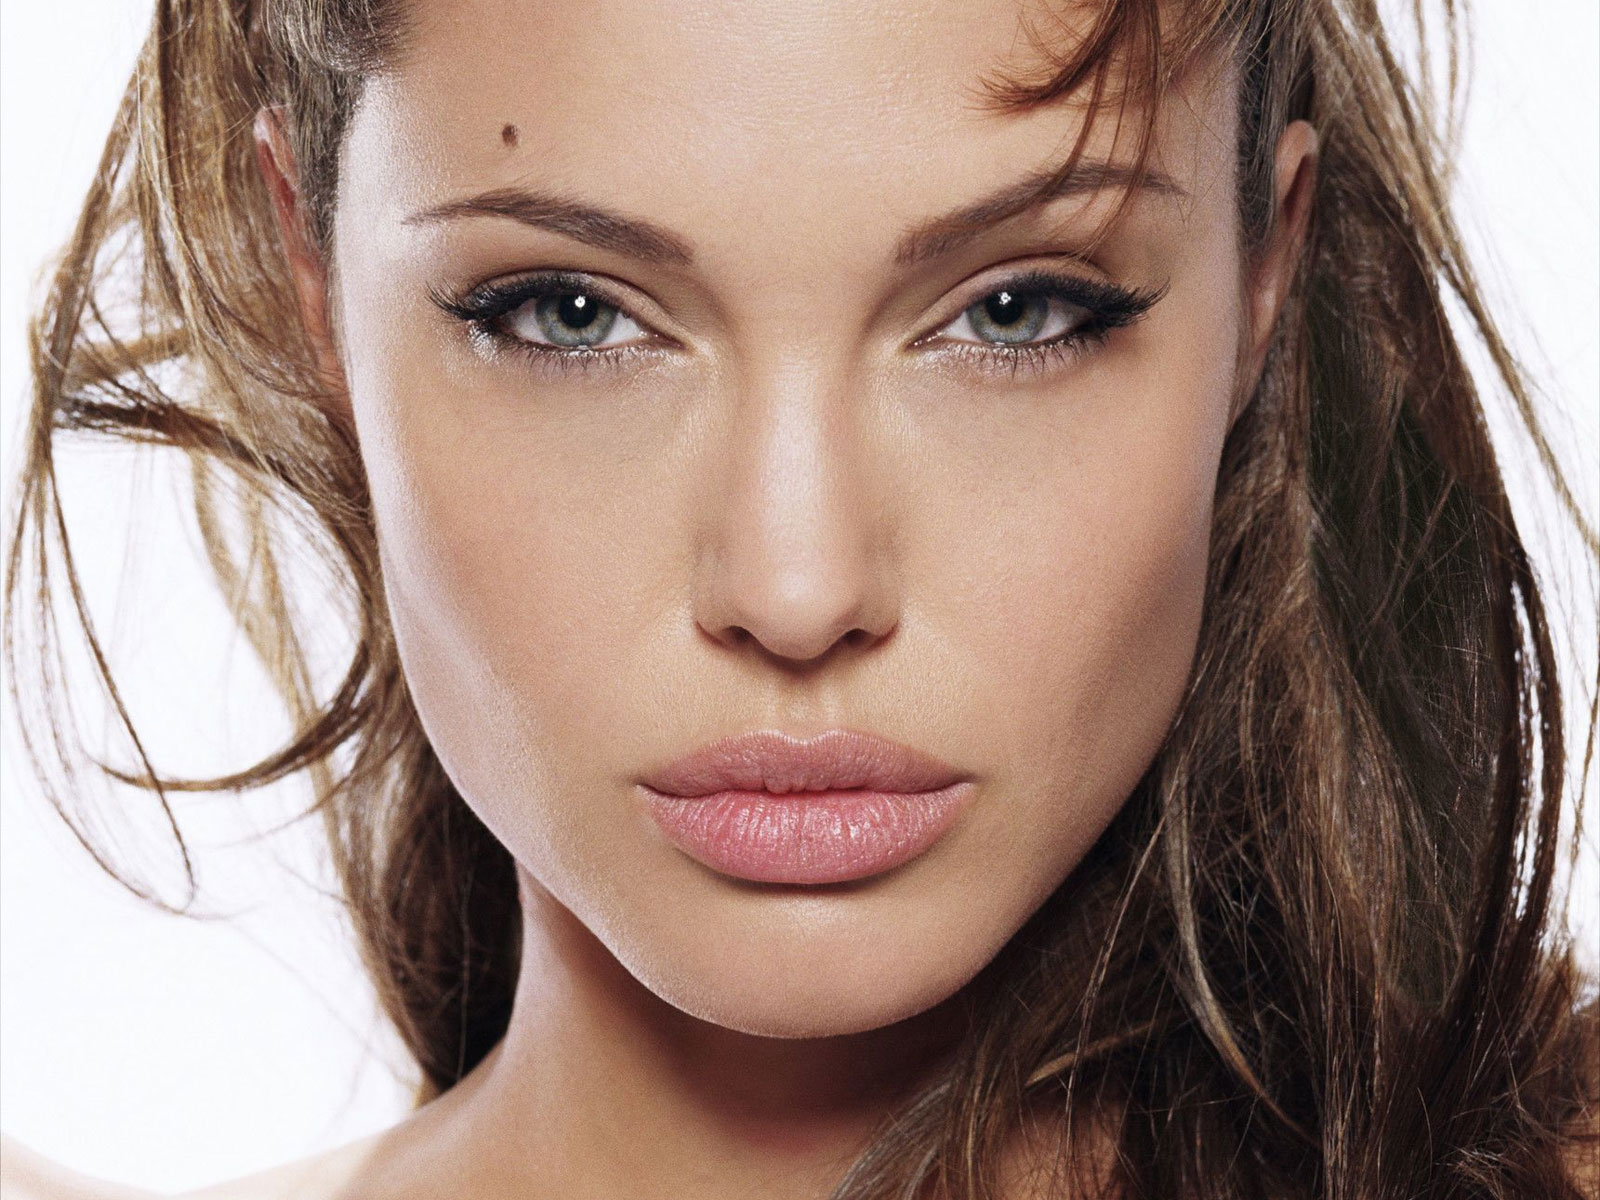 How does she keep her iconic lips healthy? She uses Blistex, a lip balm brand